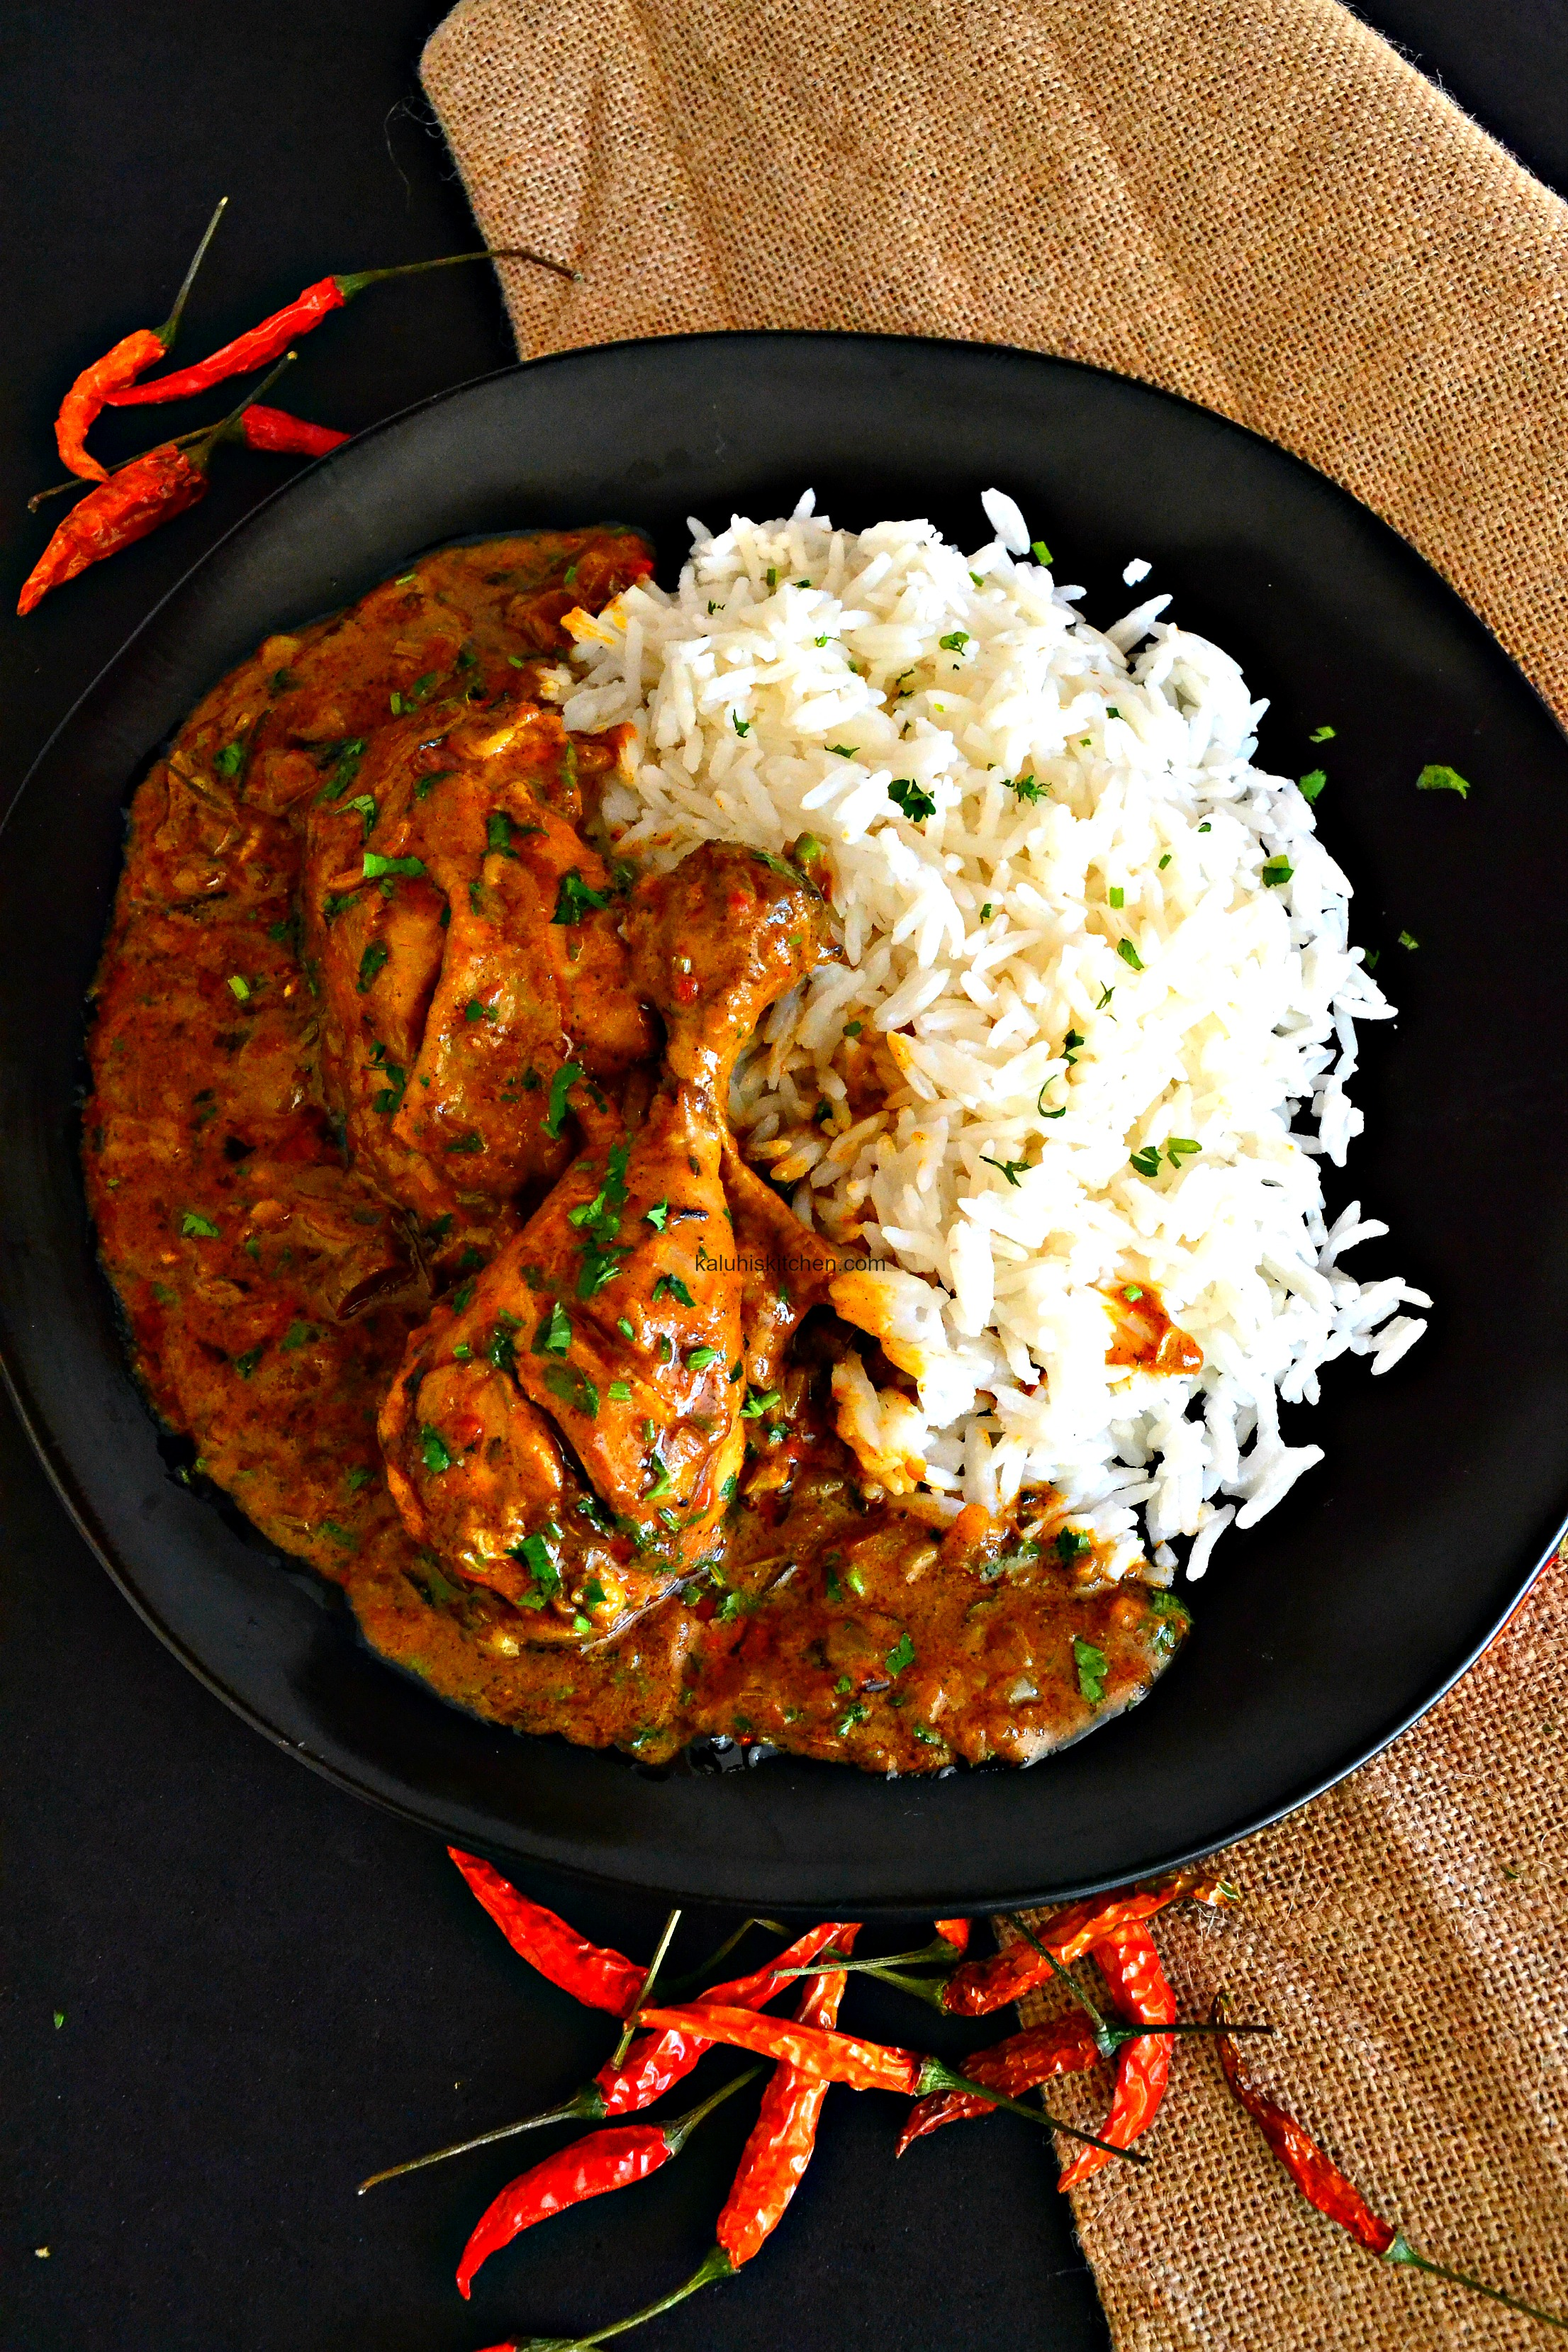 Best food bloggers in kenyabest food bloggers in africabest food best food bloggers in kenyabest food bloggers in africabest food bloggers in the worldkaluhiskitchenchicken curry recipesg forumfinder Gallery